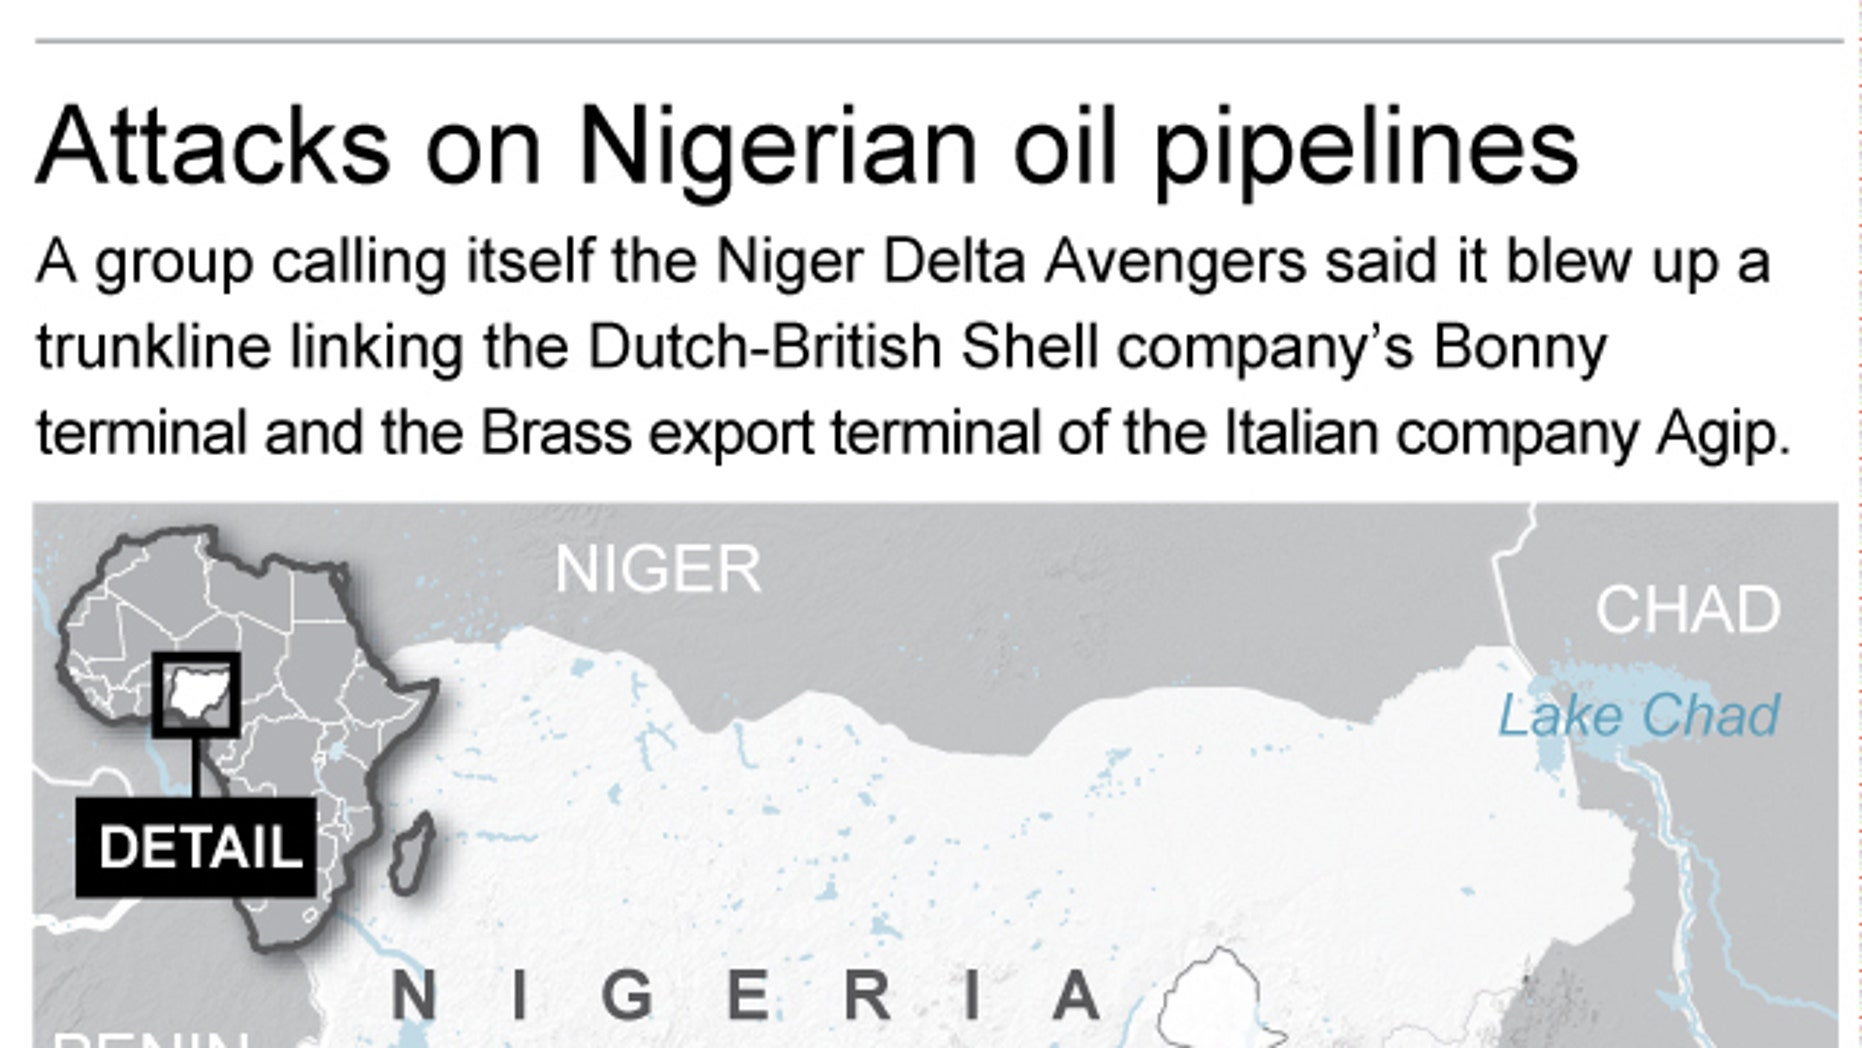 Map locates areas where Nigerian oil pipelines were attacked; 2c x 3 inches; 96.3 mm x 76 mm;